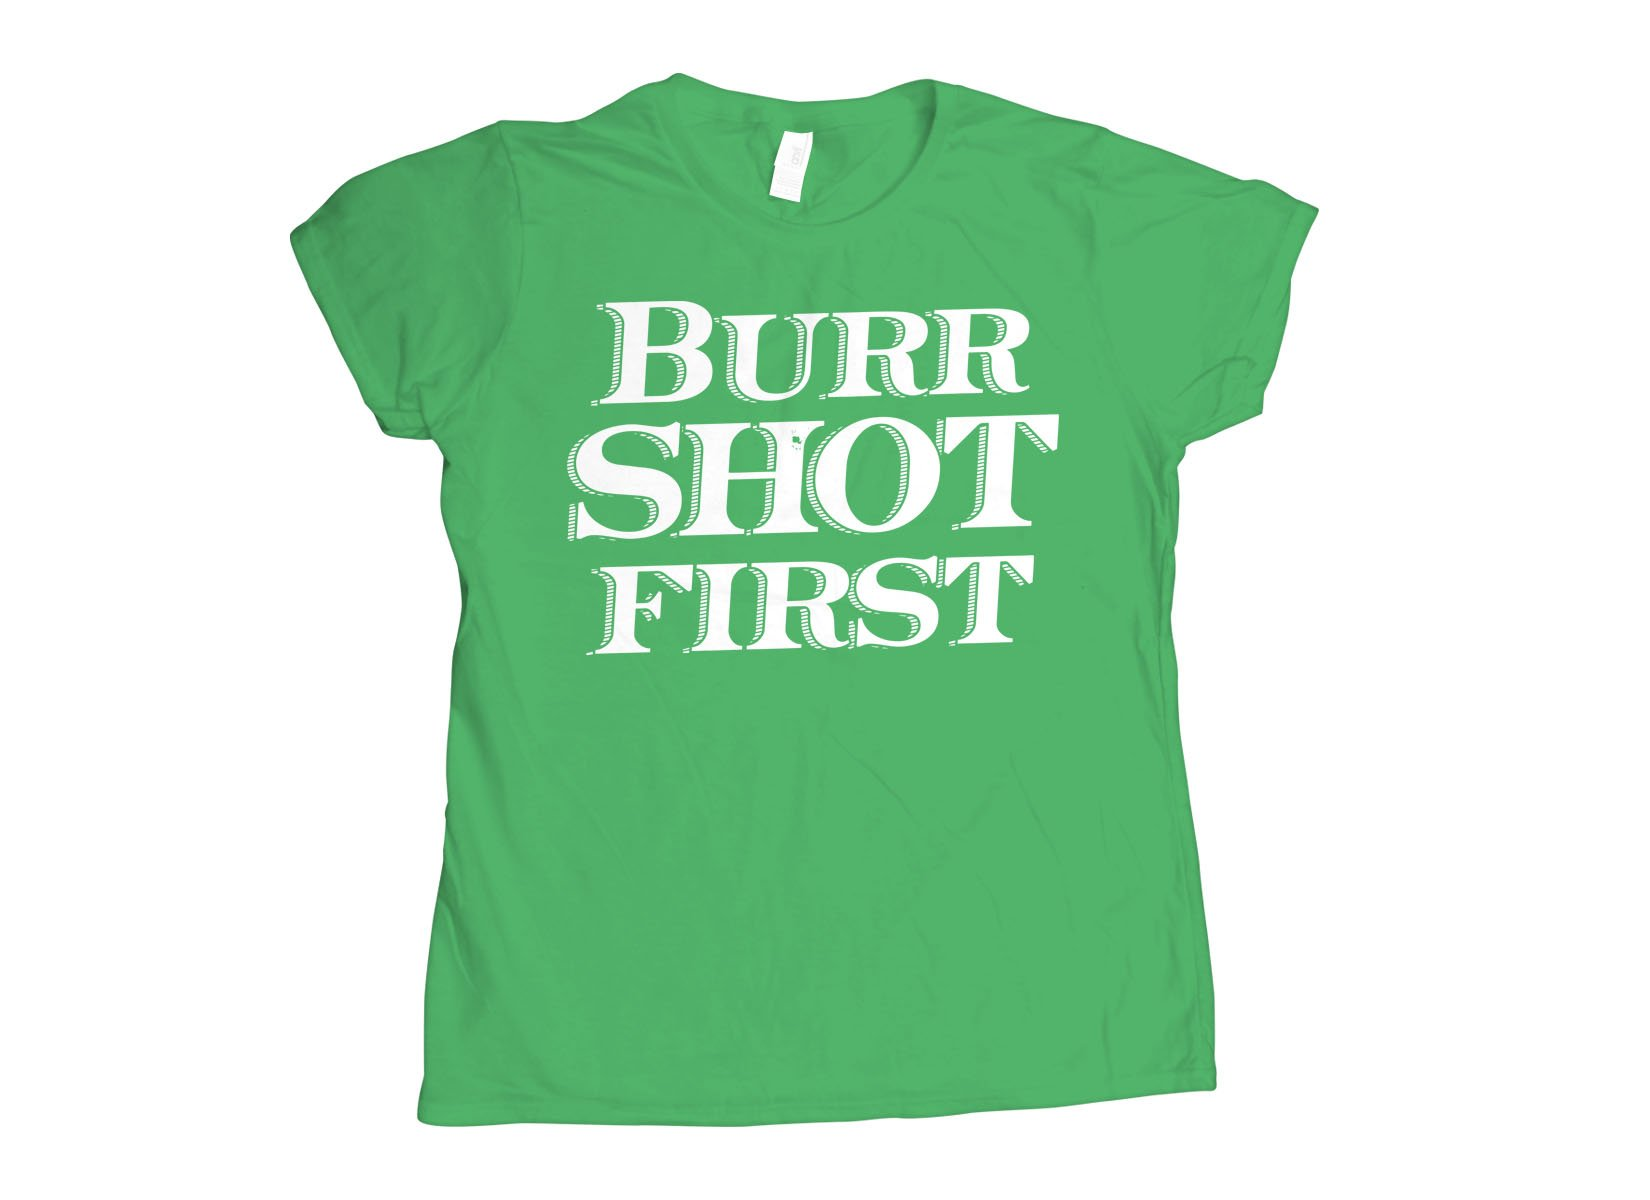 Burr Shot First on Womens T-Shirt